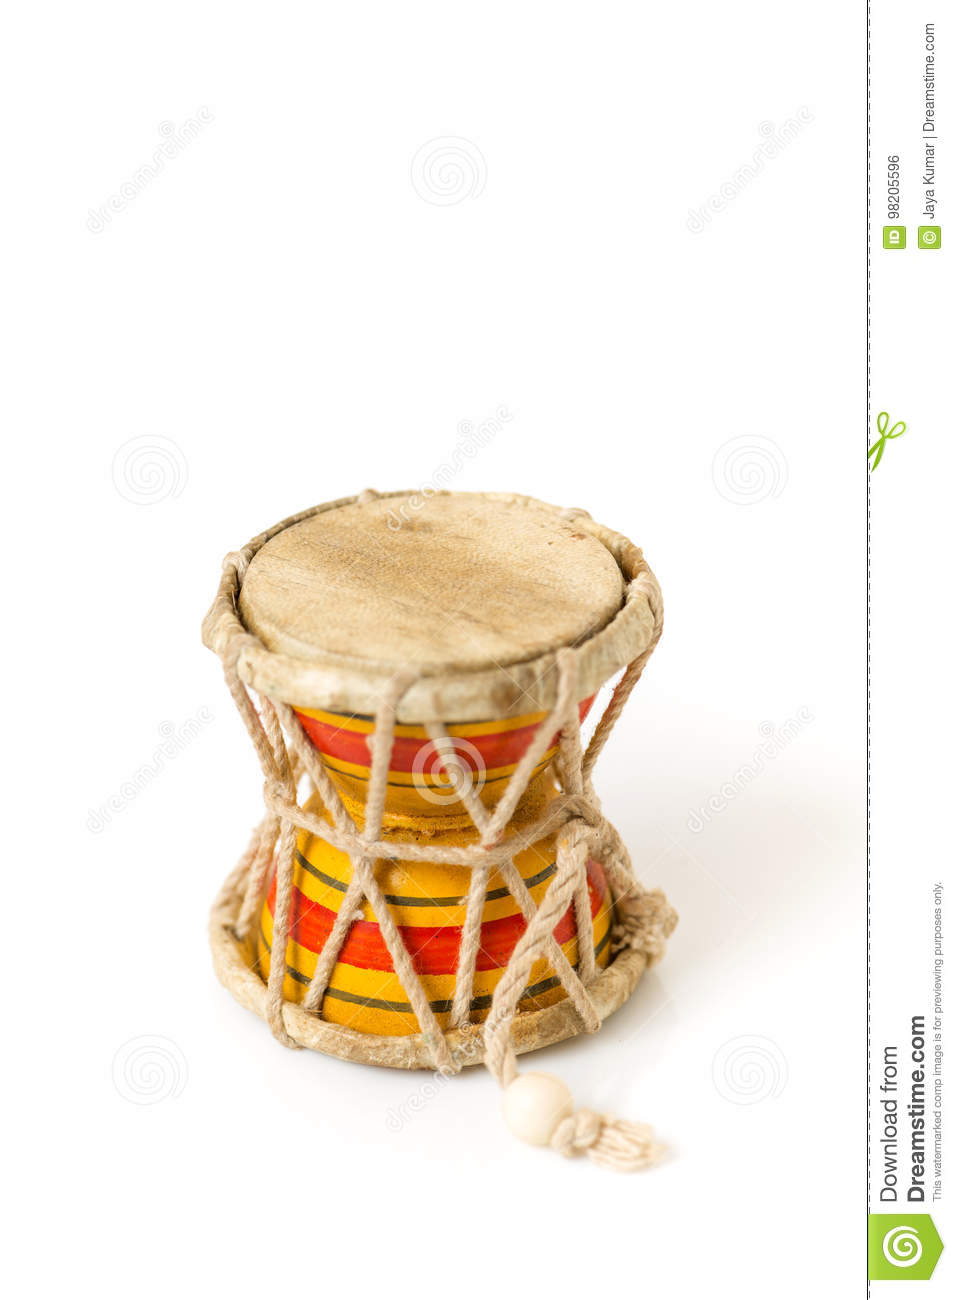 Indian Drums Damarul Instrument For Lord Shiva Stock Photo